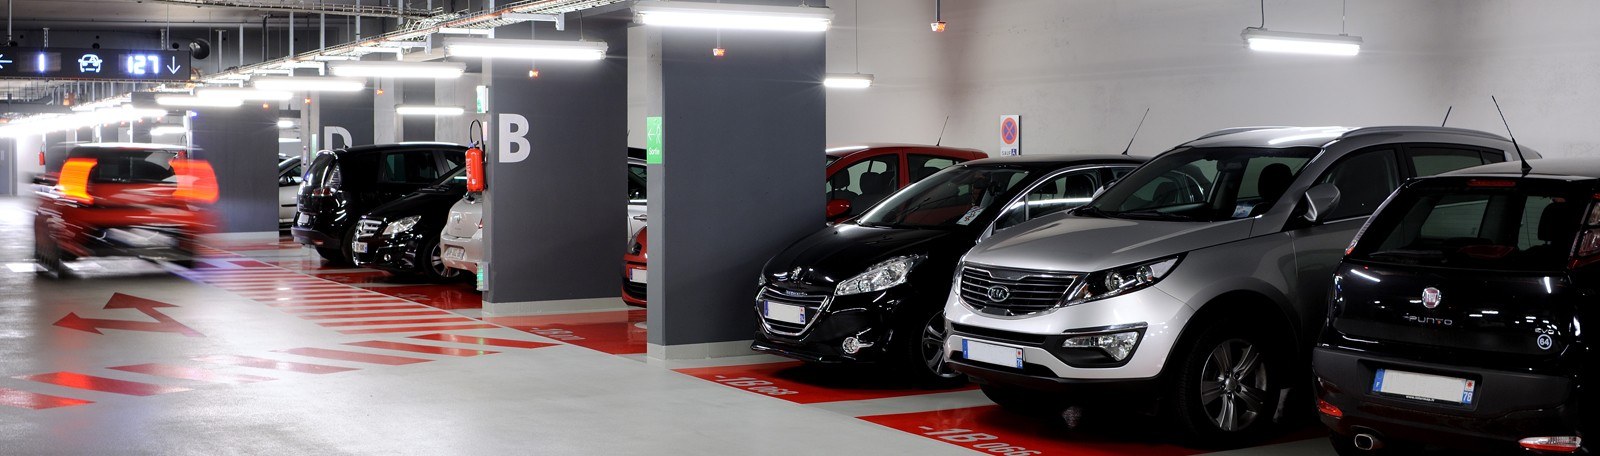 Parking Q-Park Philharmonie